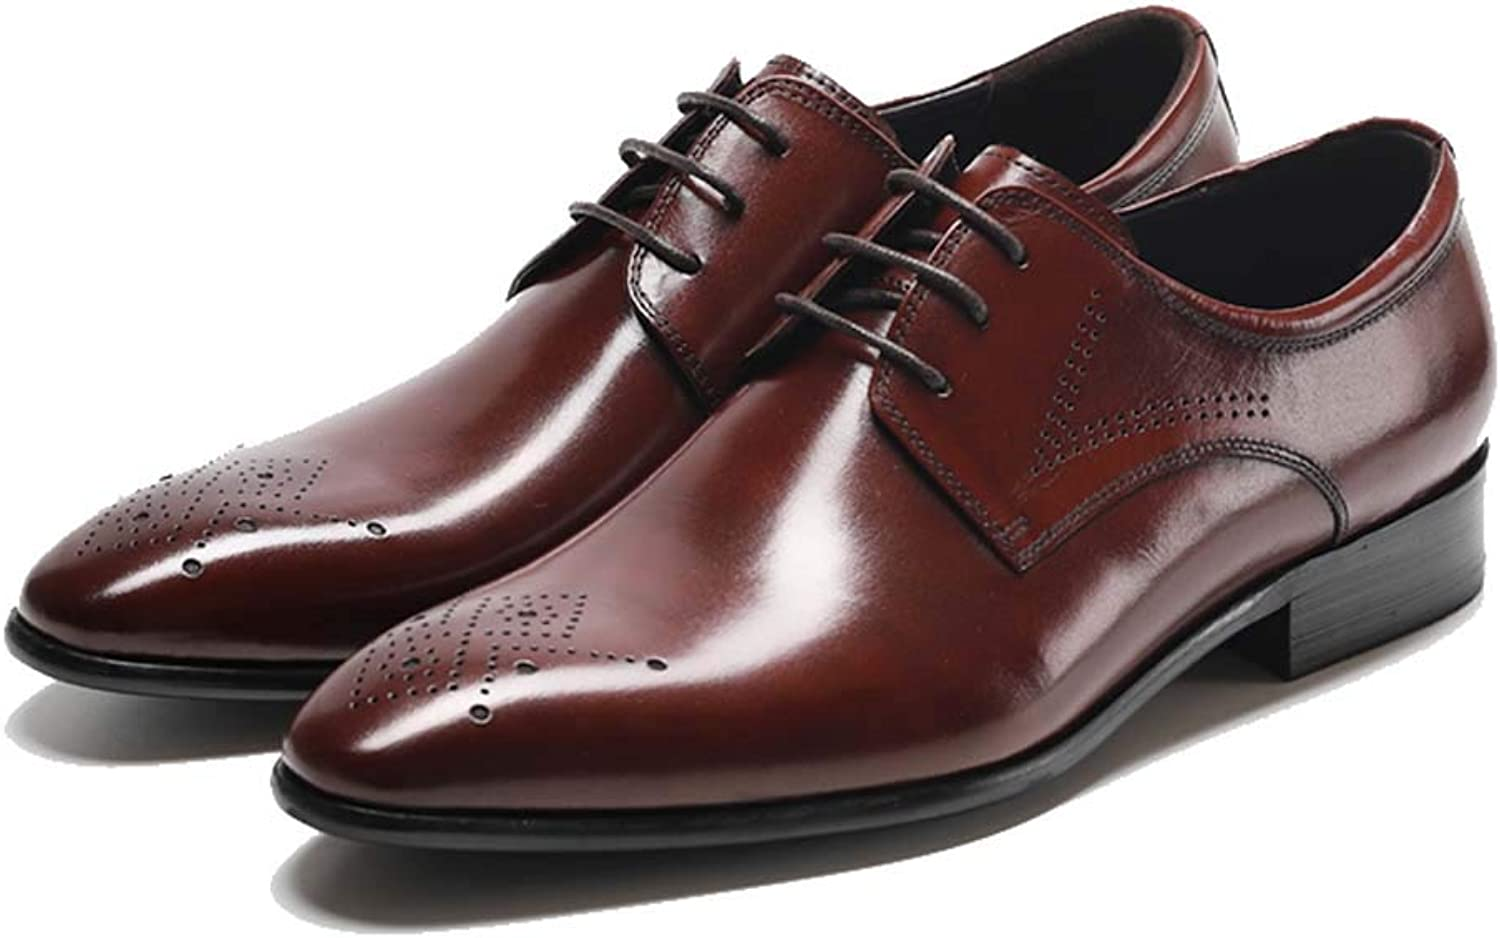 Men's Office shoes Leather Dress Pointed Leather shoes with Retro Business shoes